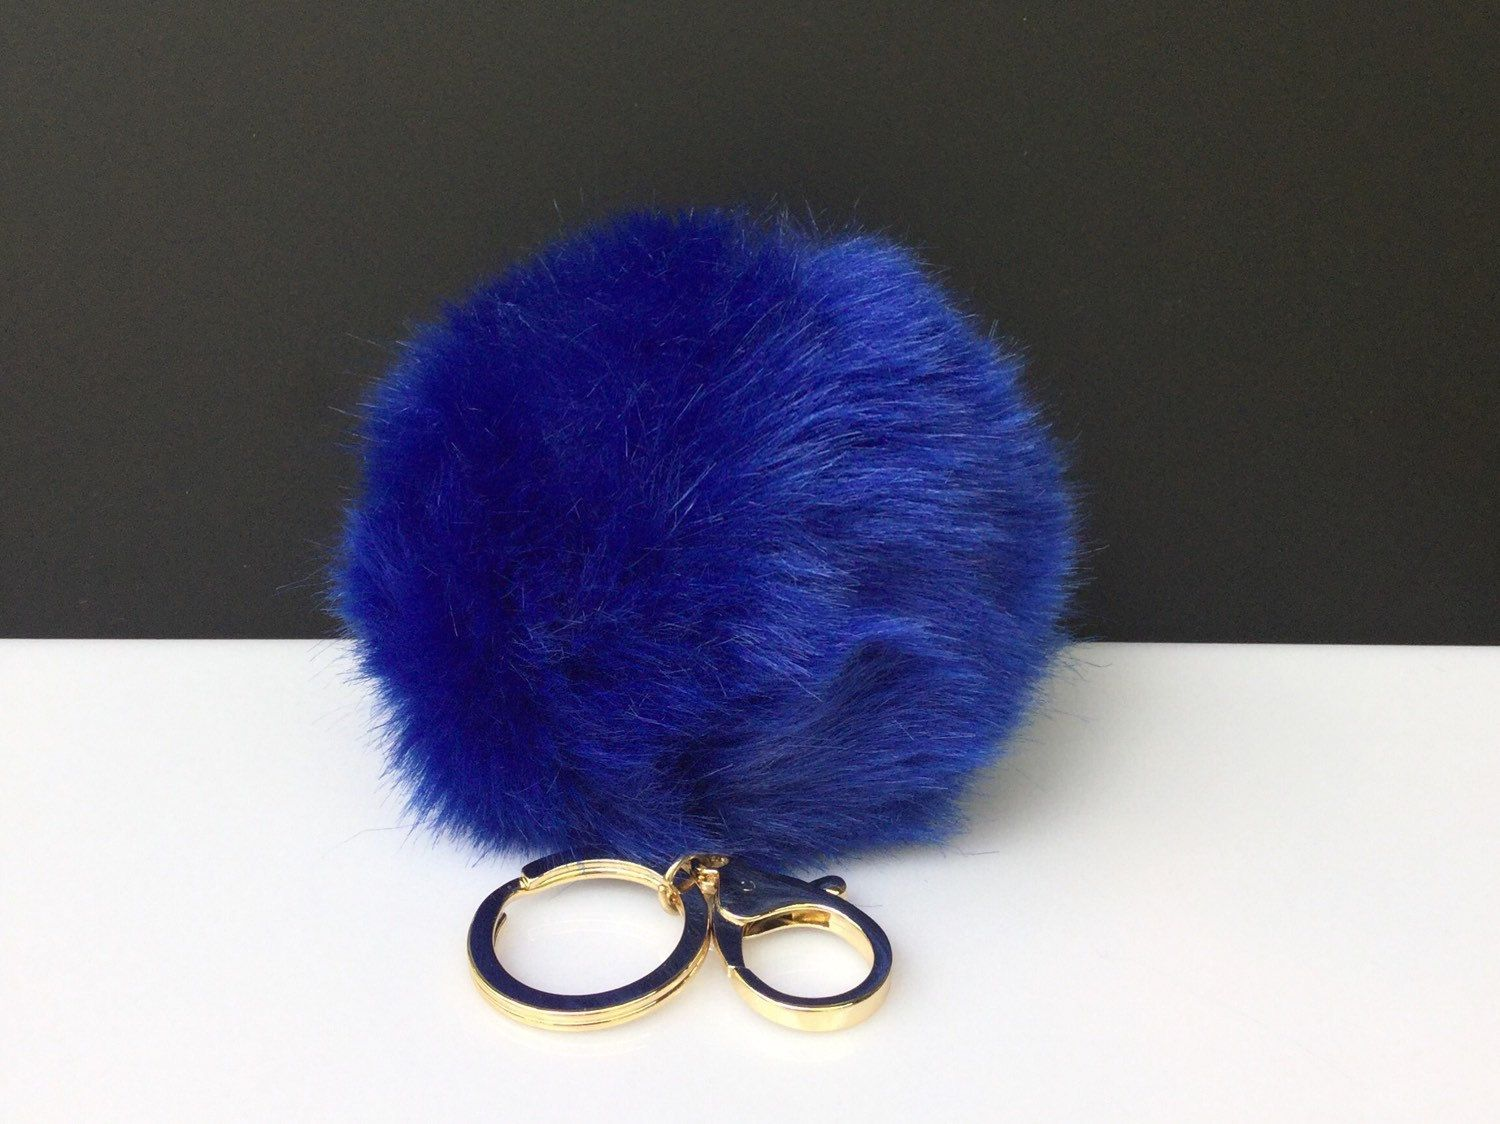 f29a4b7e8063 Faux Rabbit Fur Pom Pom bag Keyring Hot Couture Novelty keychain pom pom  fake fur ball in deep blue by YogaStudio55 on Etsy